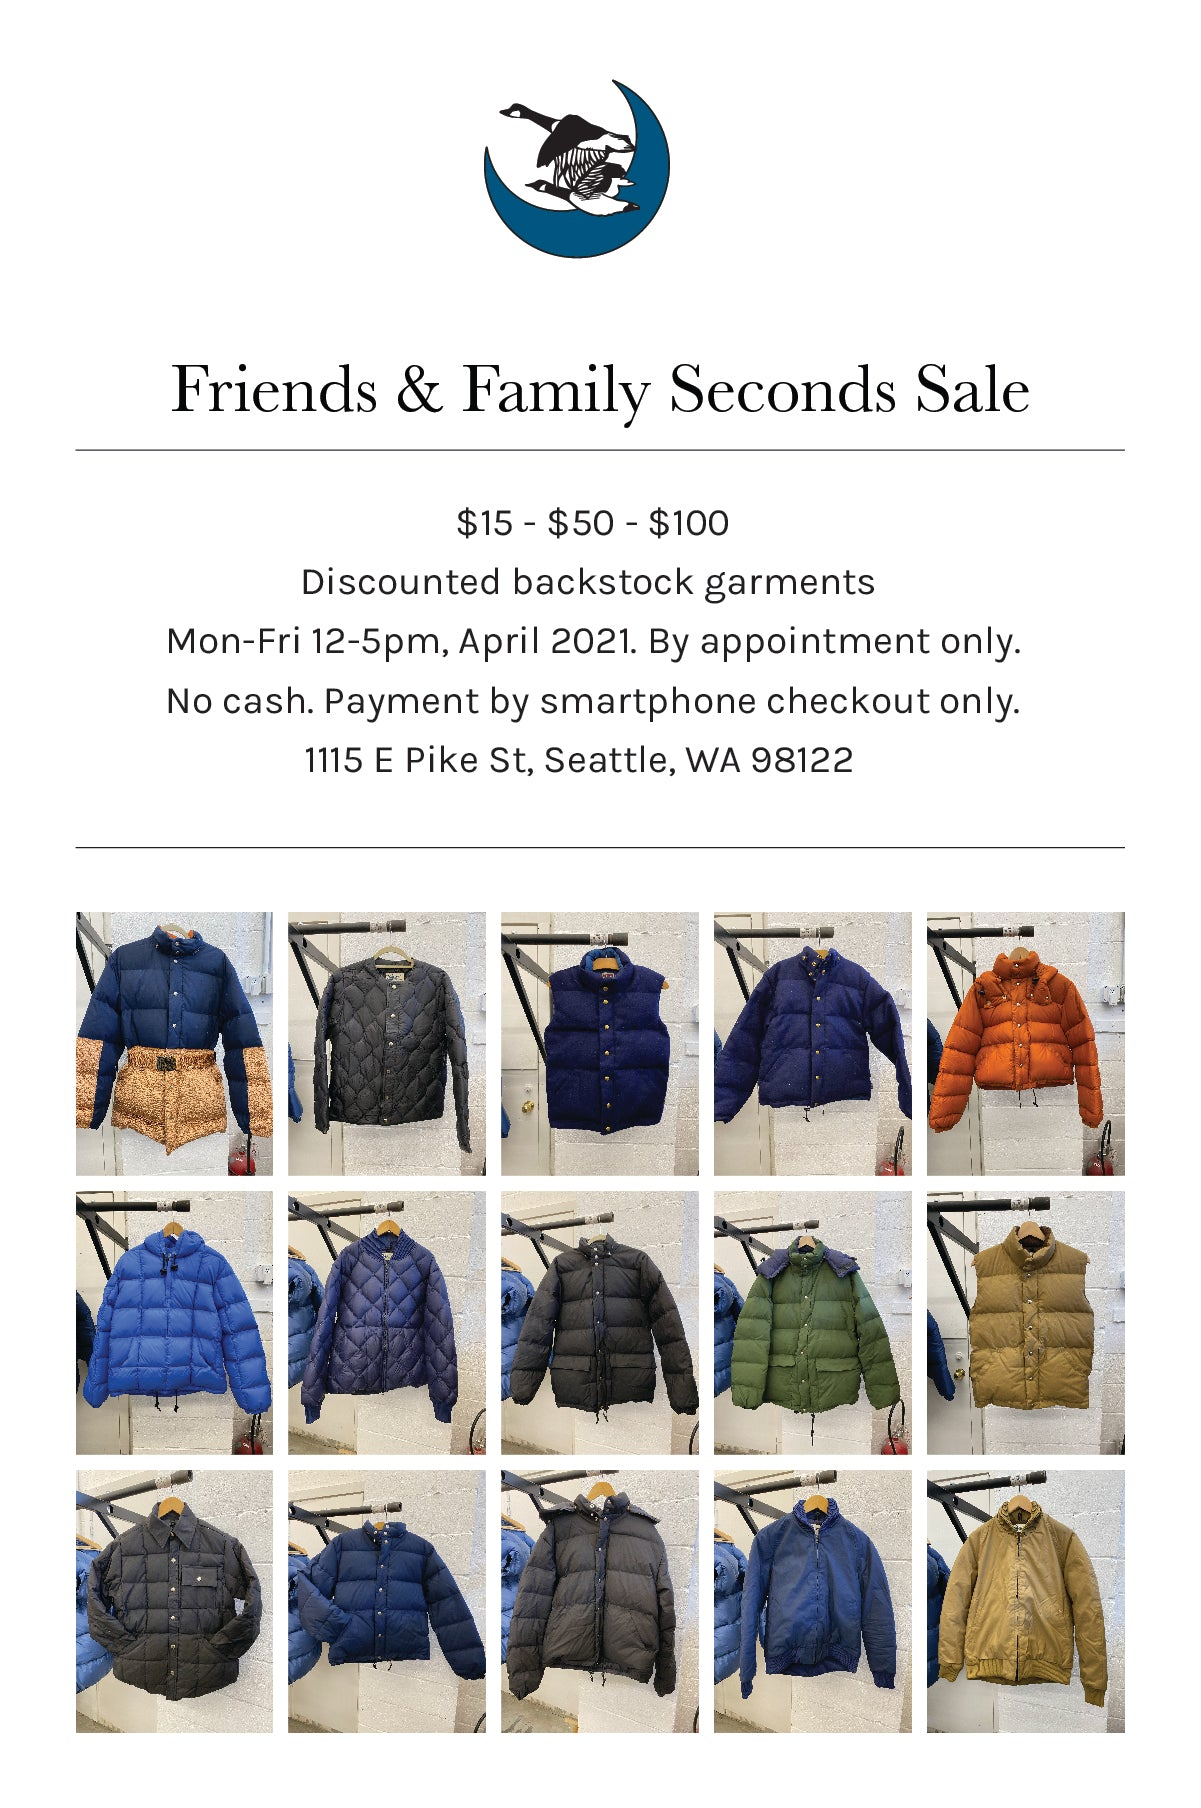 Friends and Family Sale Flyer